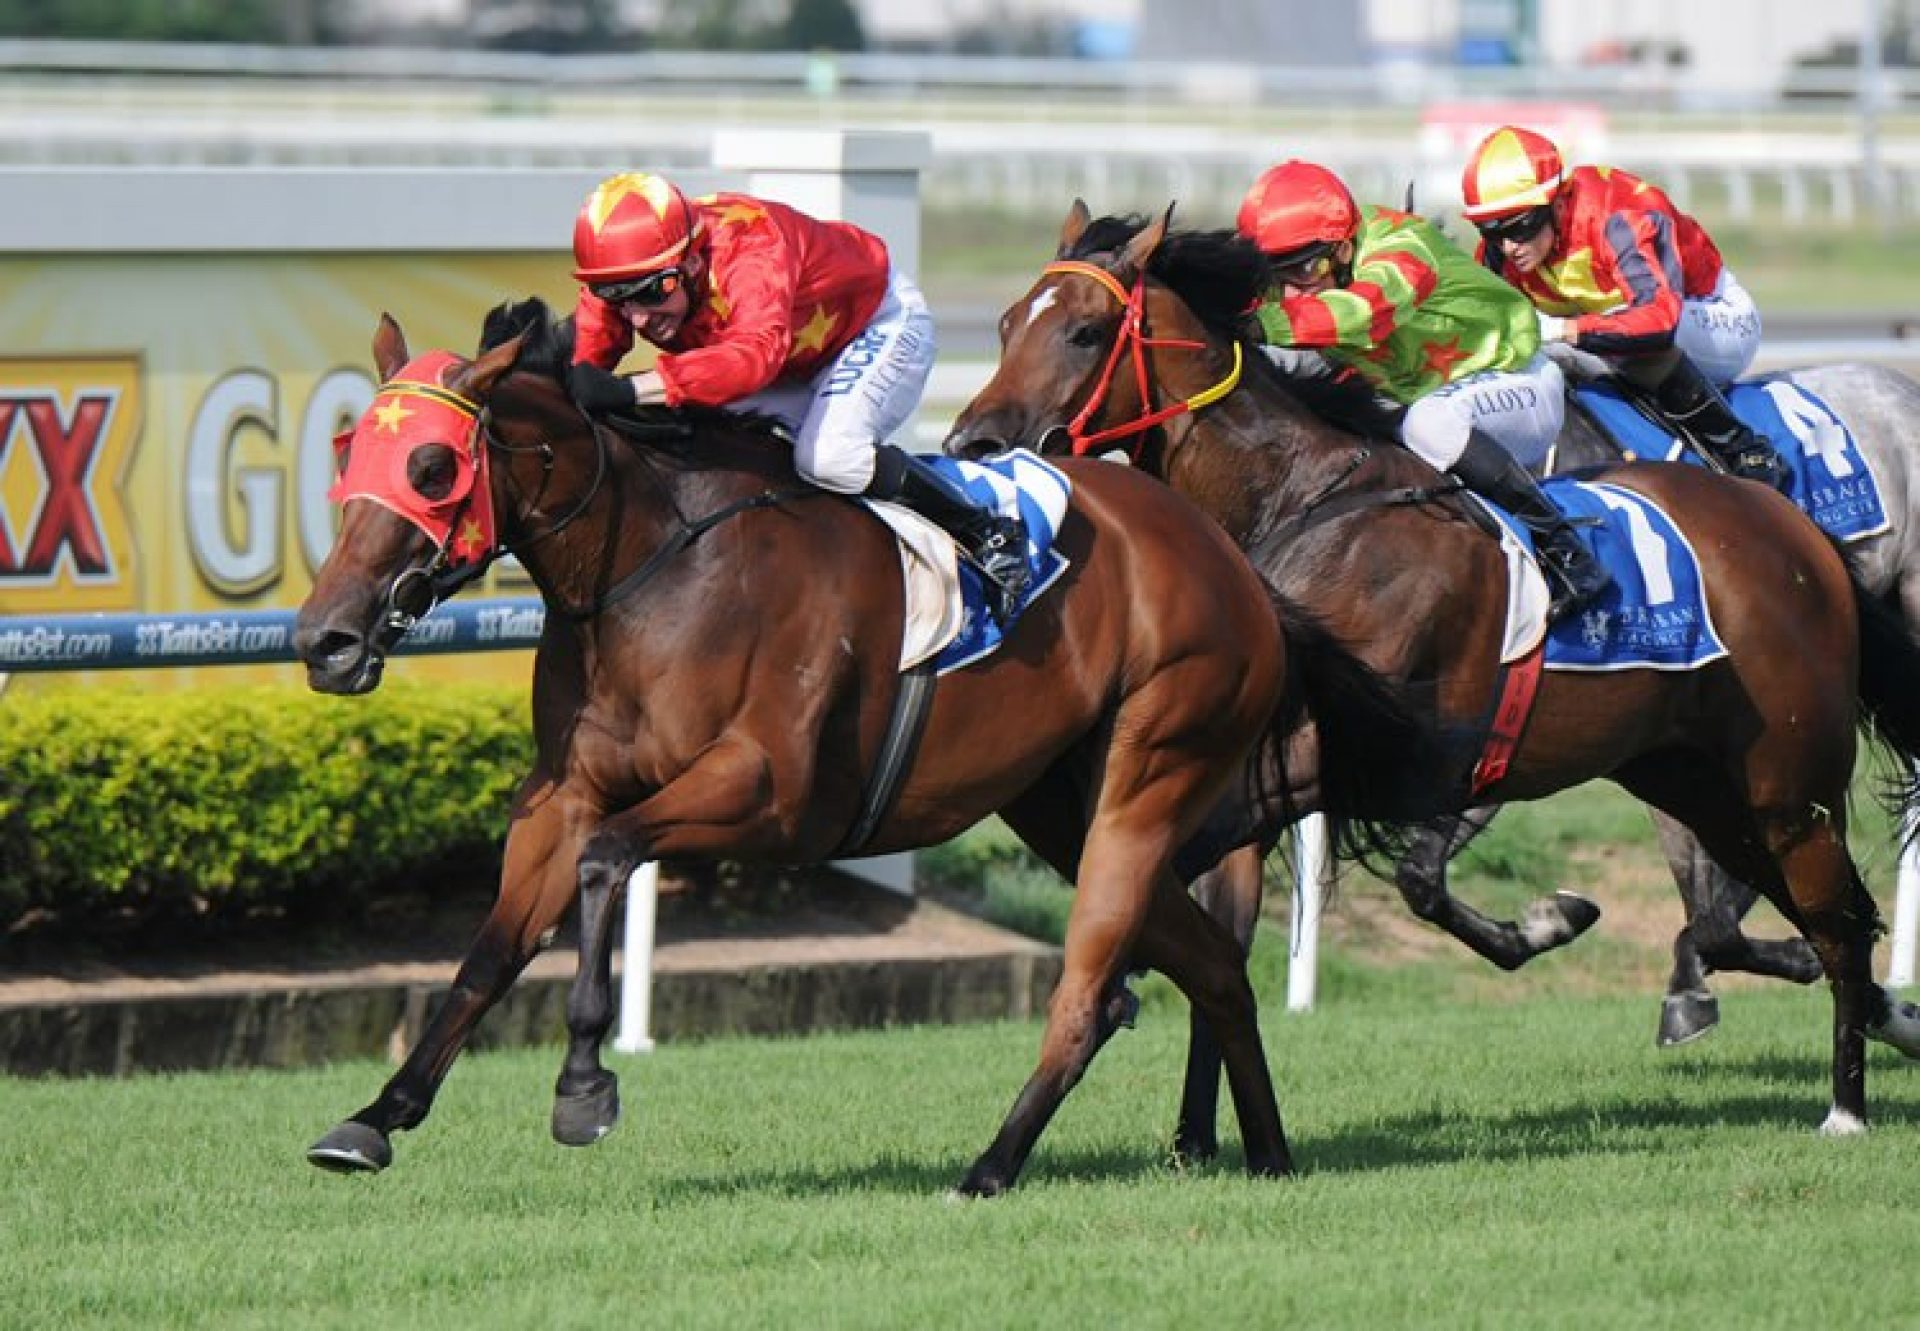 Reelem In Ruby (Pierro) winning the Gr.2 Hot Danish Stakes at Rosehill